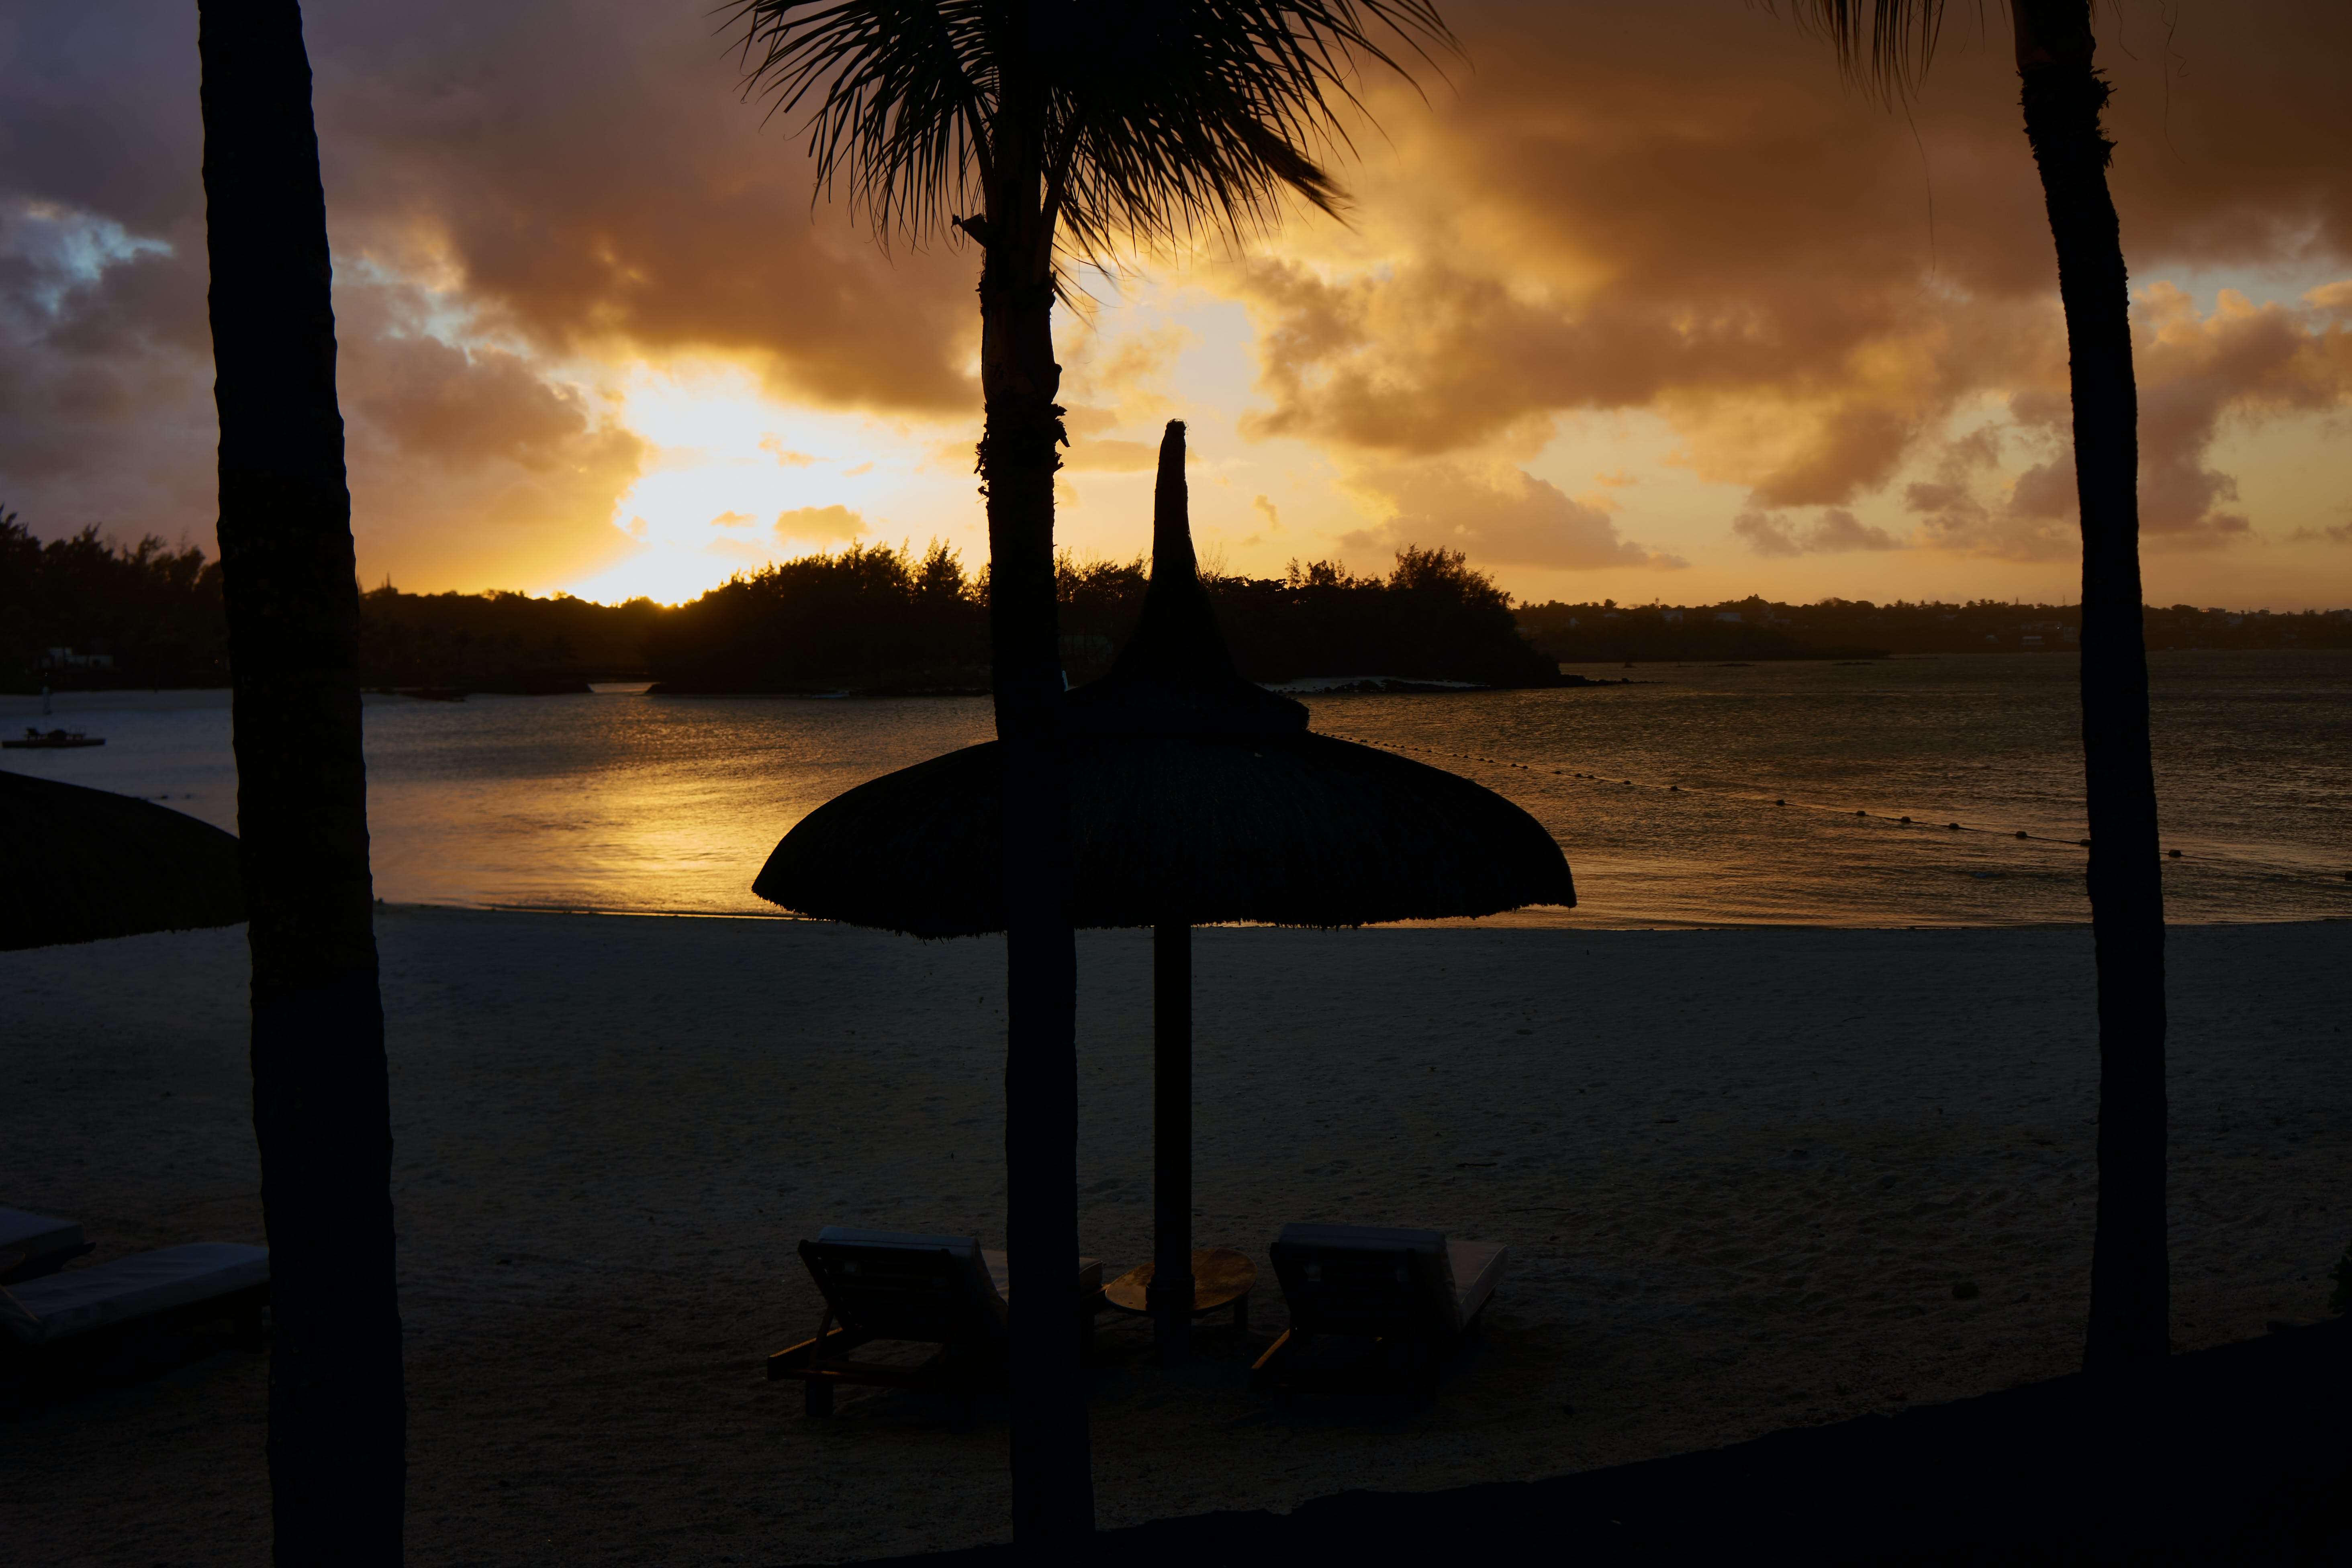 Silhouette of Parasol and Palm Trees Near Seashore